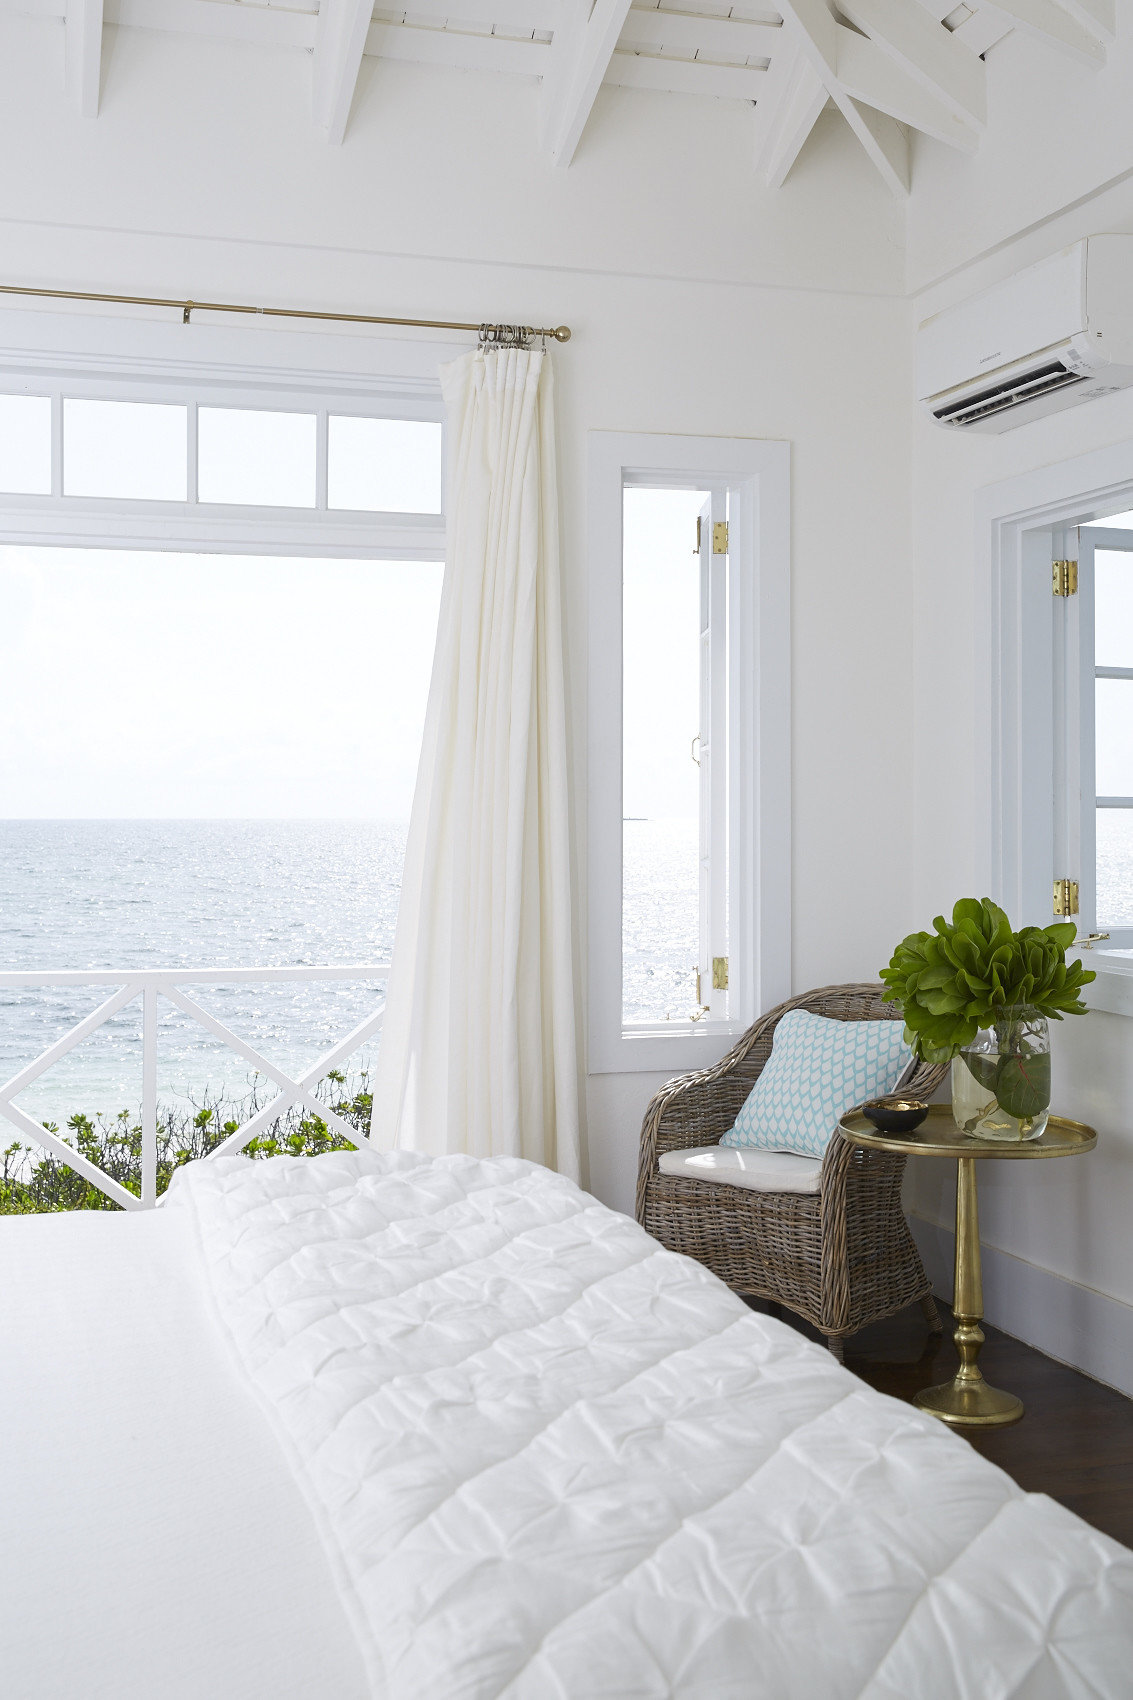 Beach Islands Luxury Travel Trip Ideas indoor wall window room property white home interior design cottage estate floor Bedroom farmhouse furniture Villa apartment decorated bedclothes